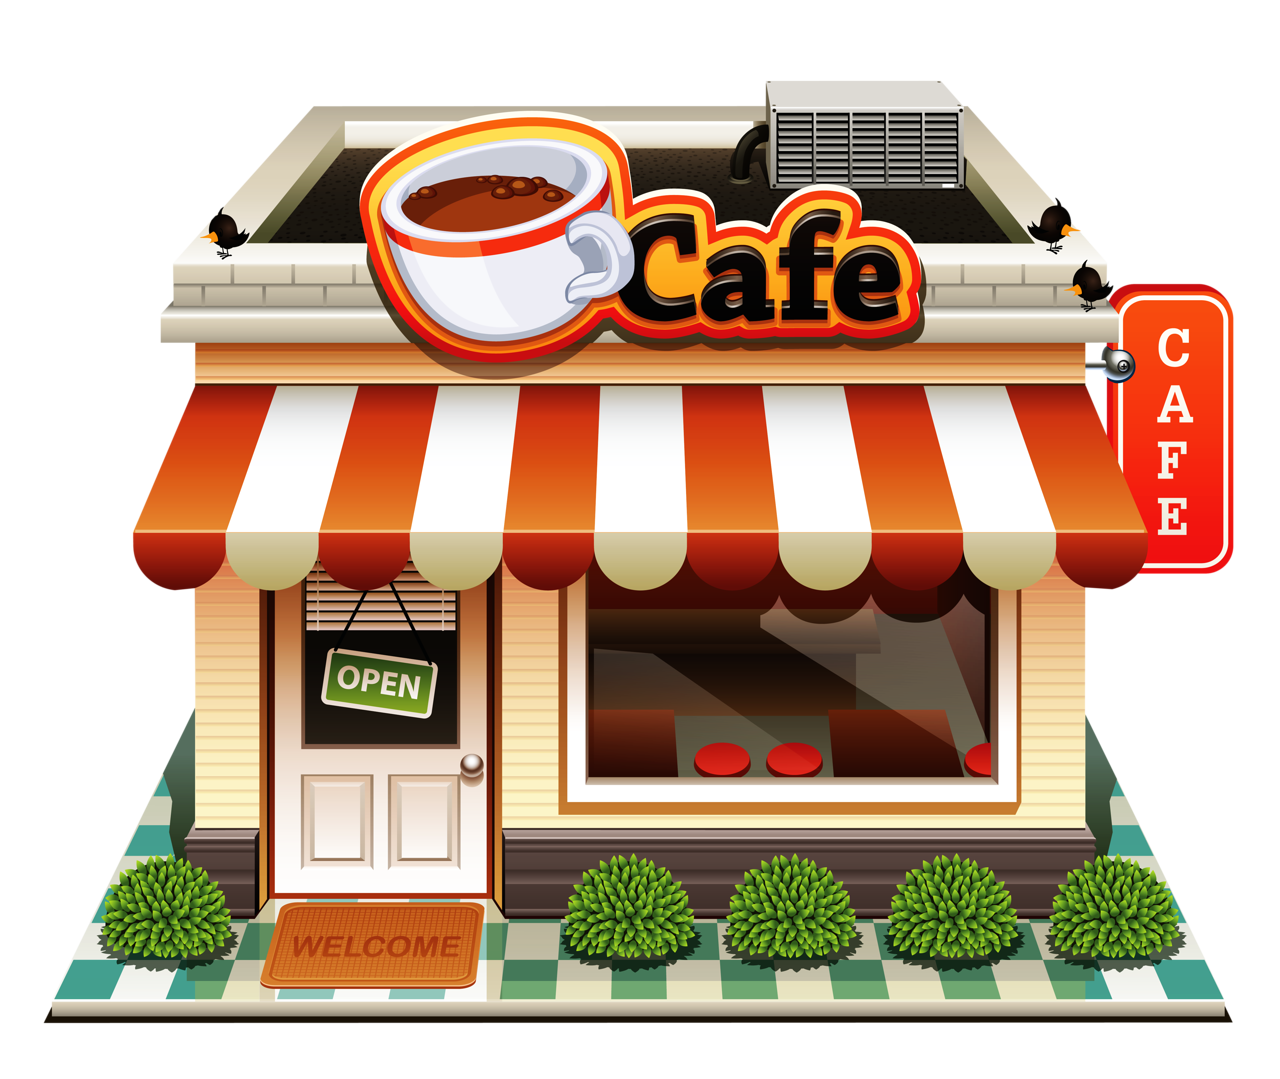 Book shop clipart picture free stock 1.png | Pinterest | Clip art, Cross stitch house and Felt food picture free stock